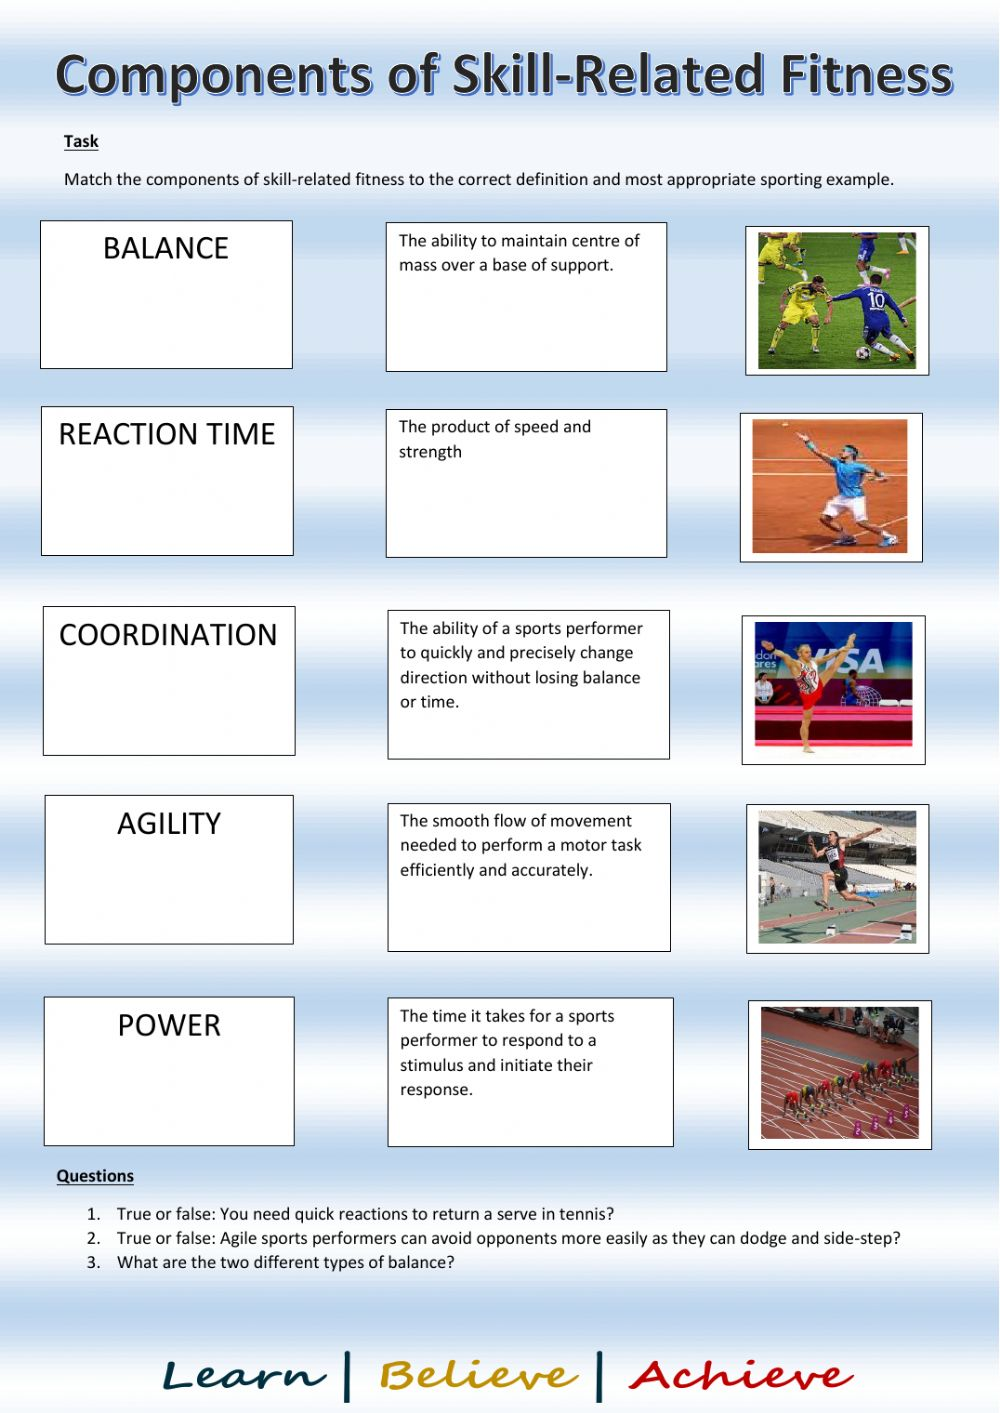 Components of skill-related fitness worksheet